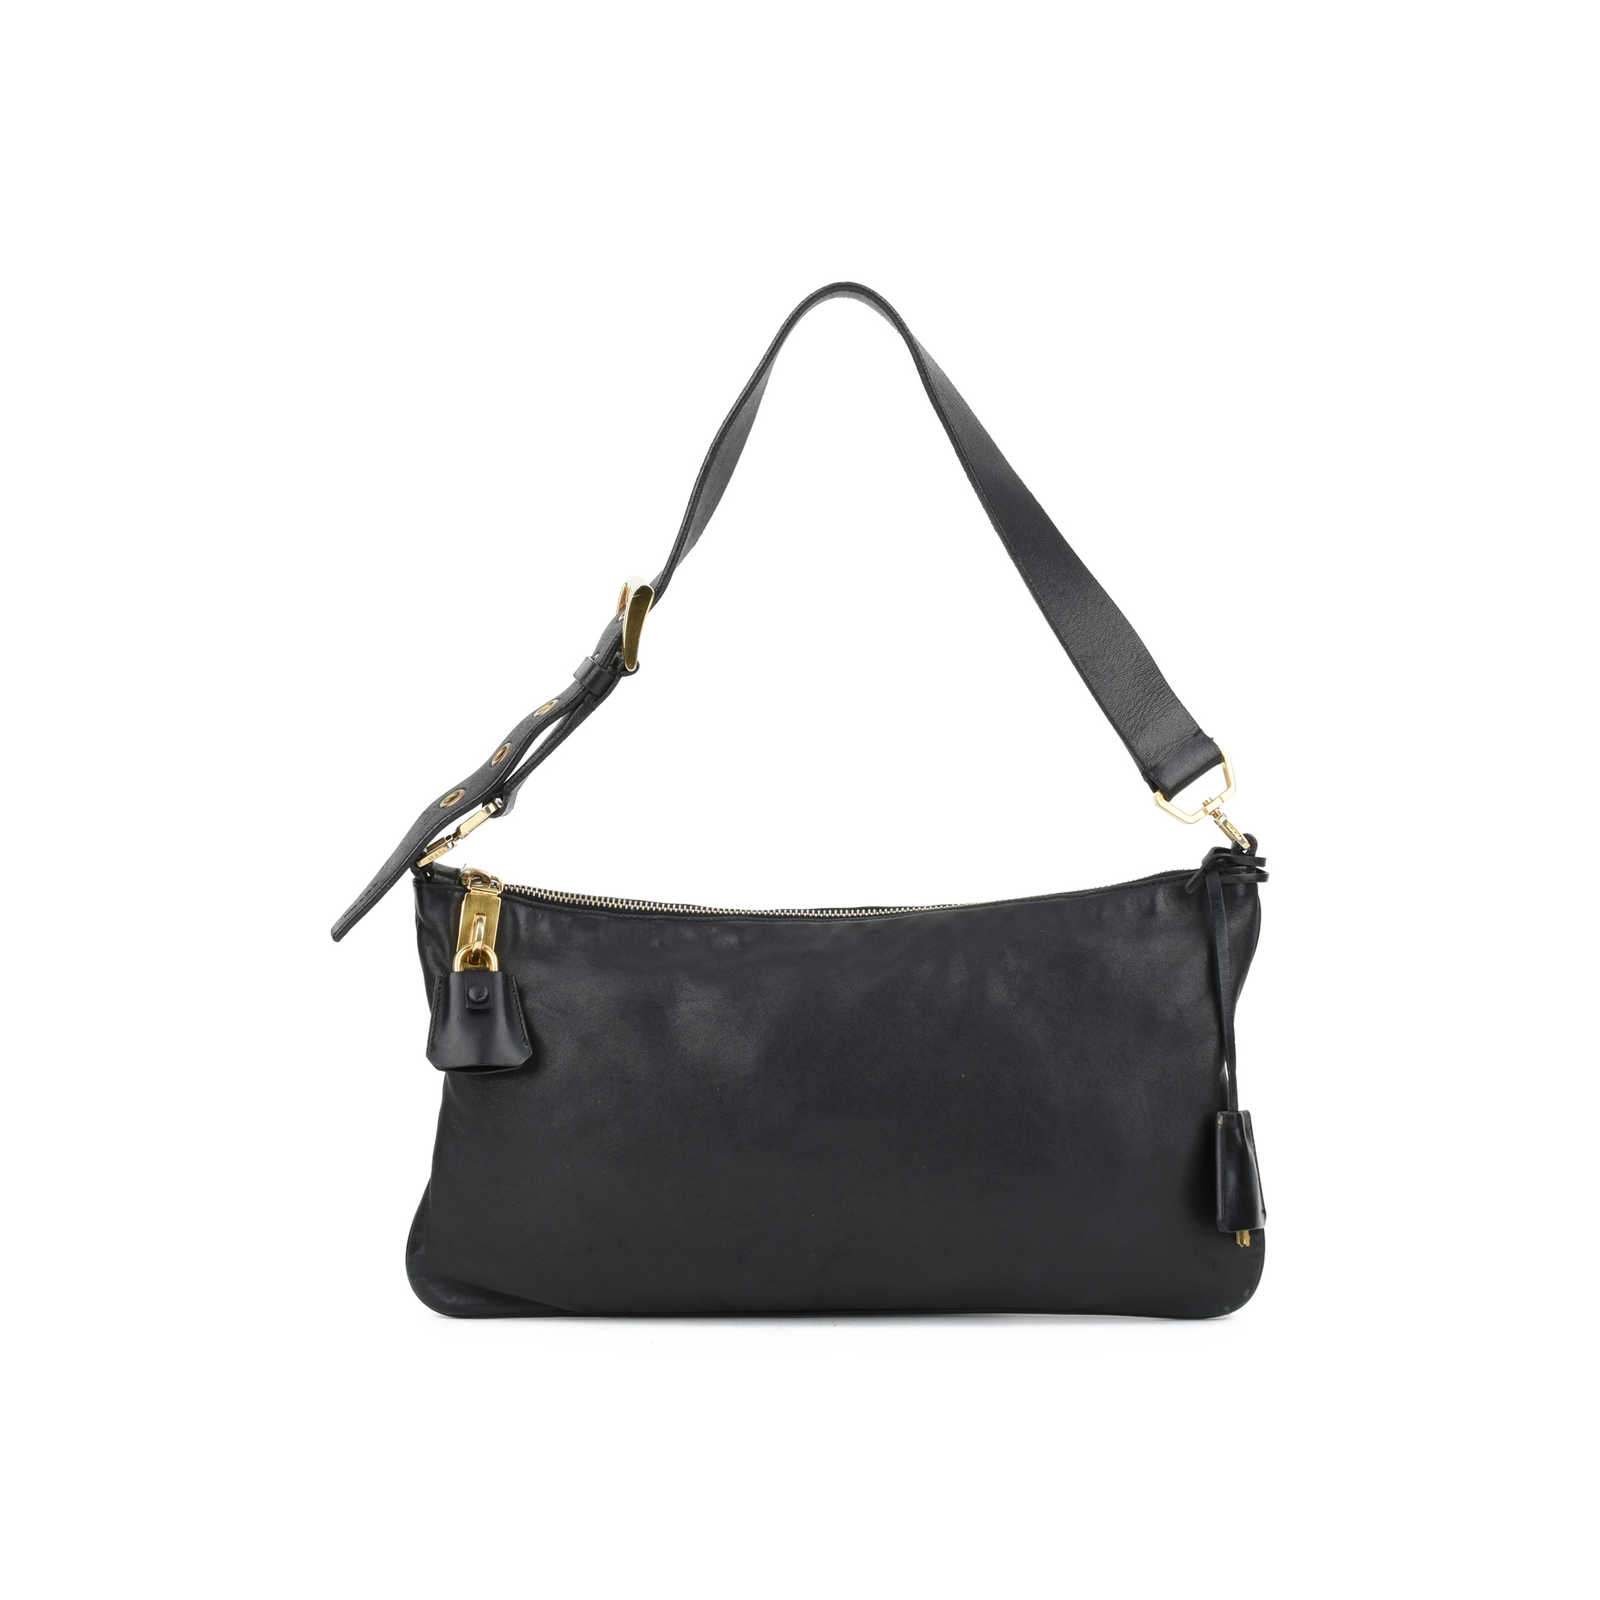 3804bcc216d9 Authentic Second Hand Prada Lock and Key Shoulder Bag (PSS-126-00053) ...